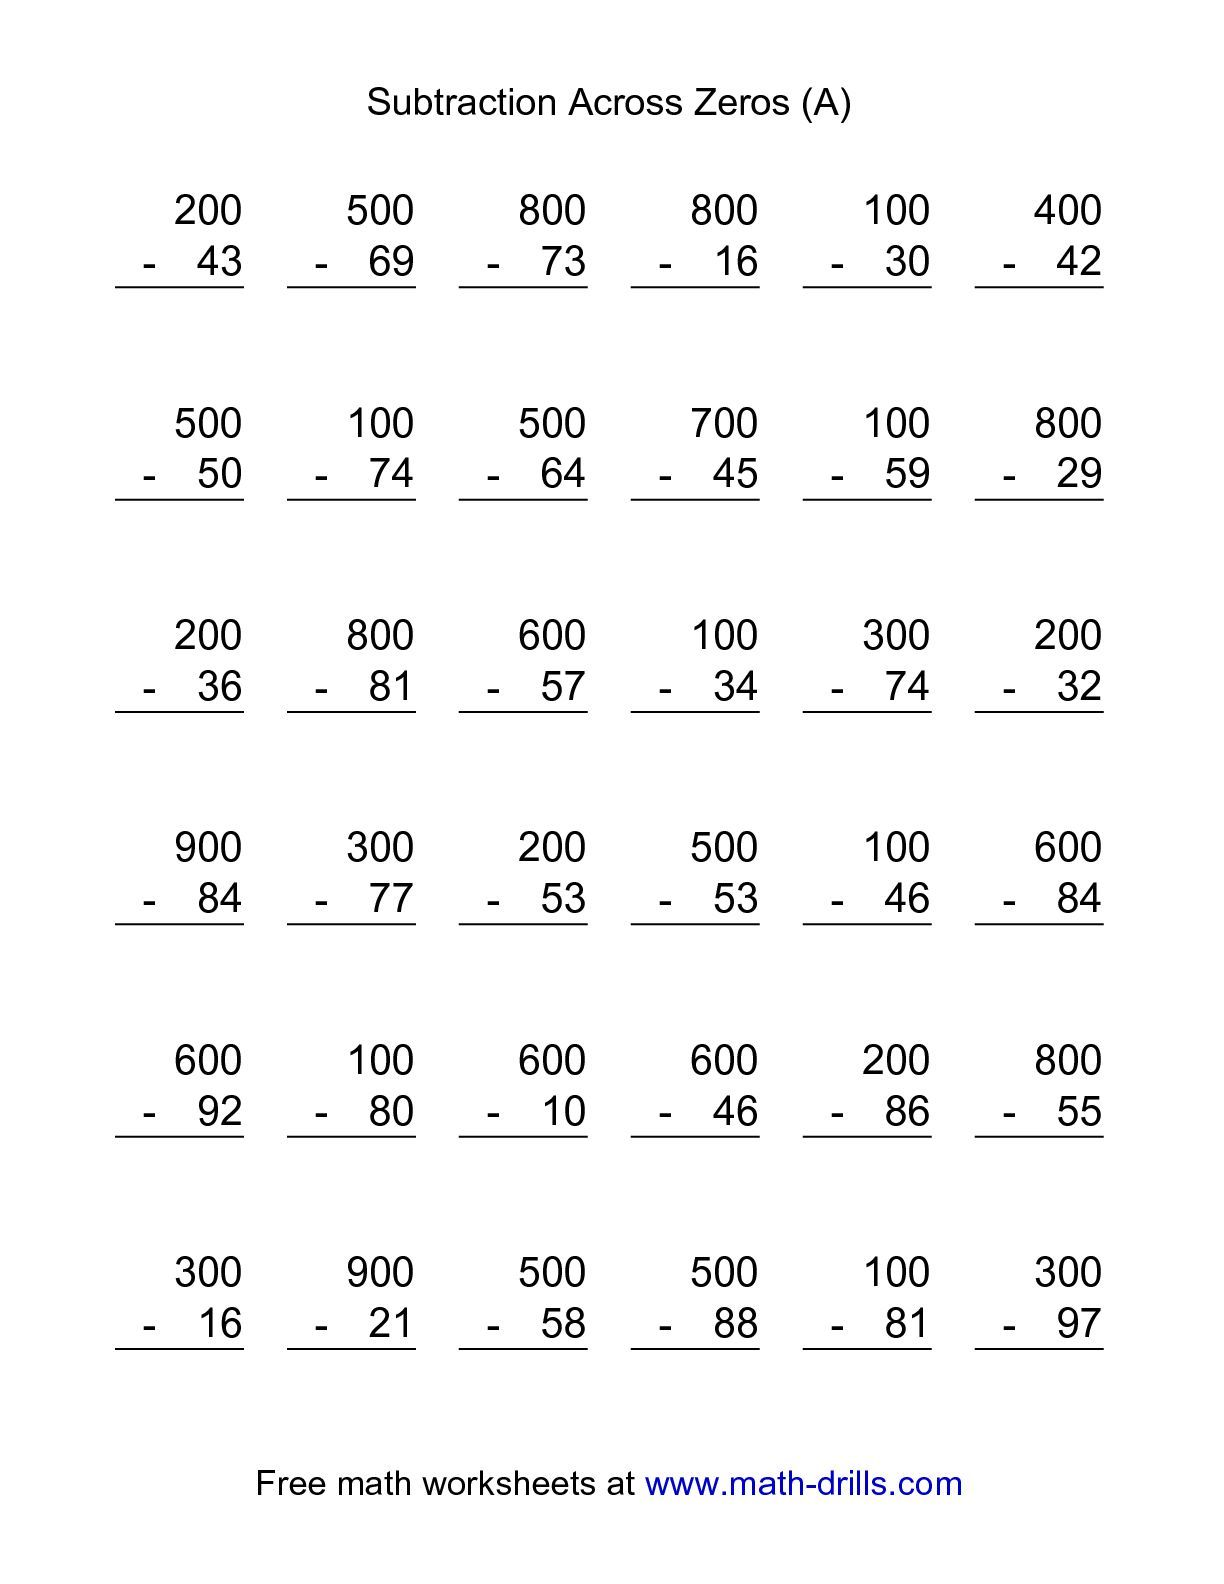 The Subtraction Across Zeros -- 36 Questions (A) math worksheet from ...